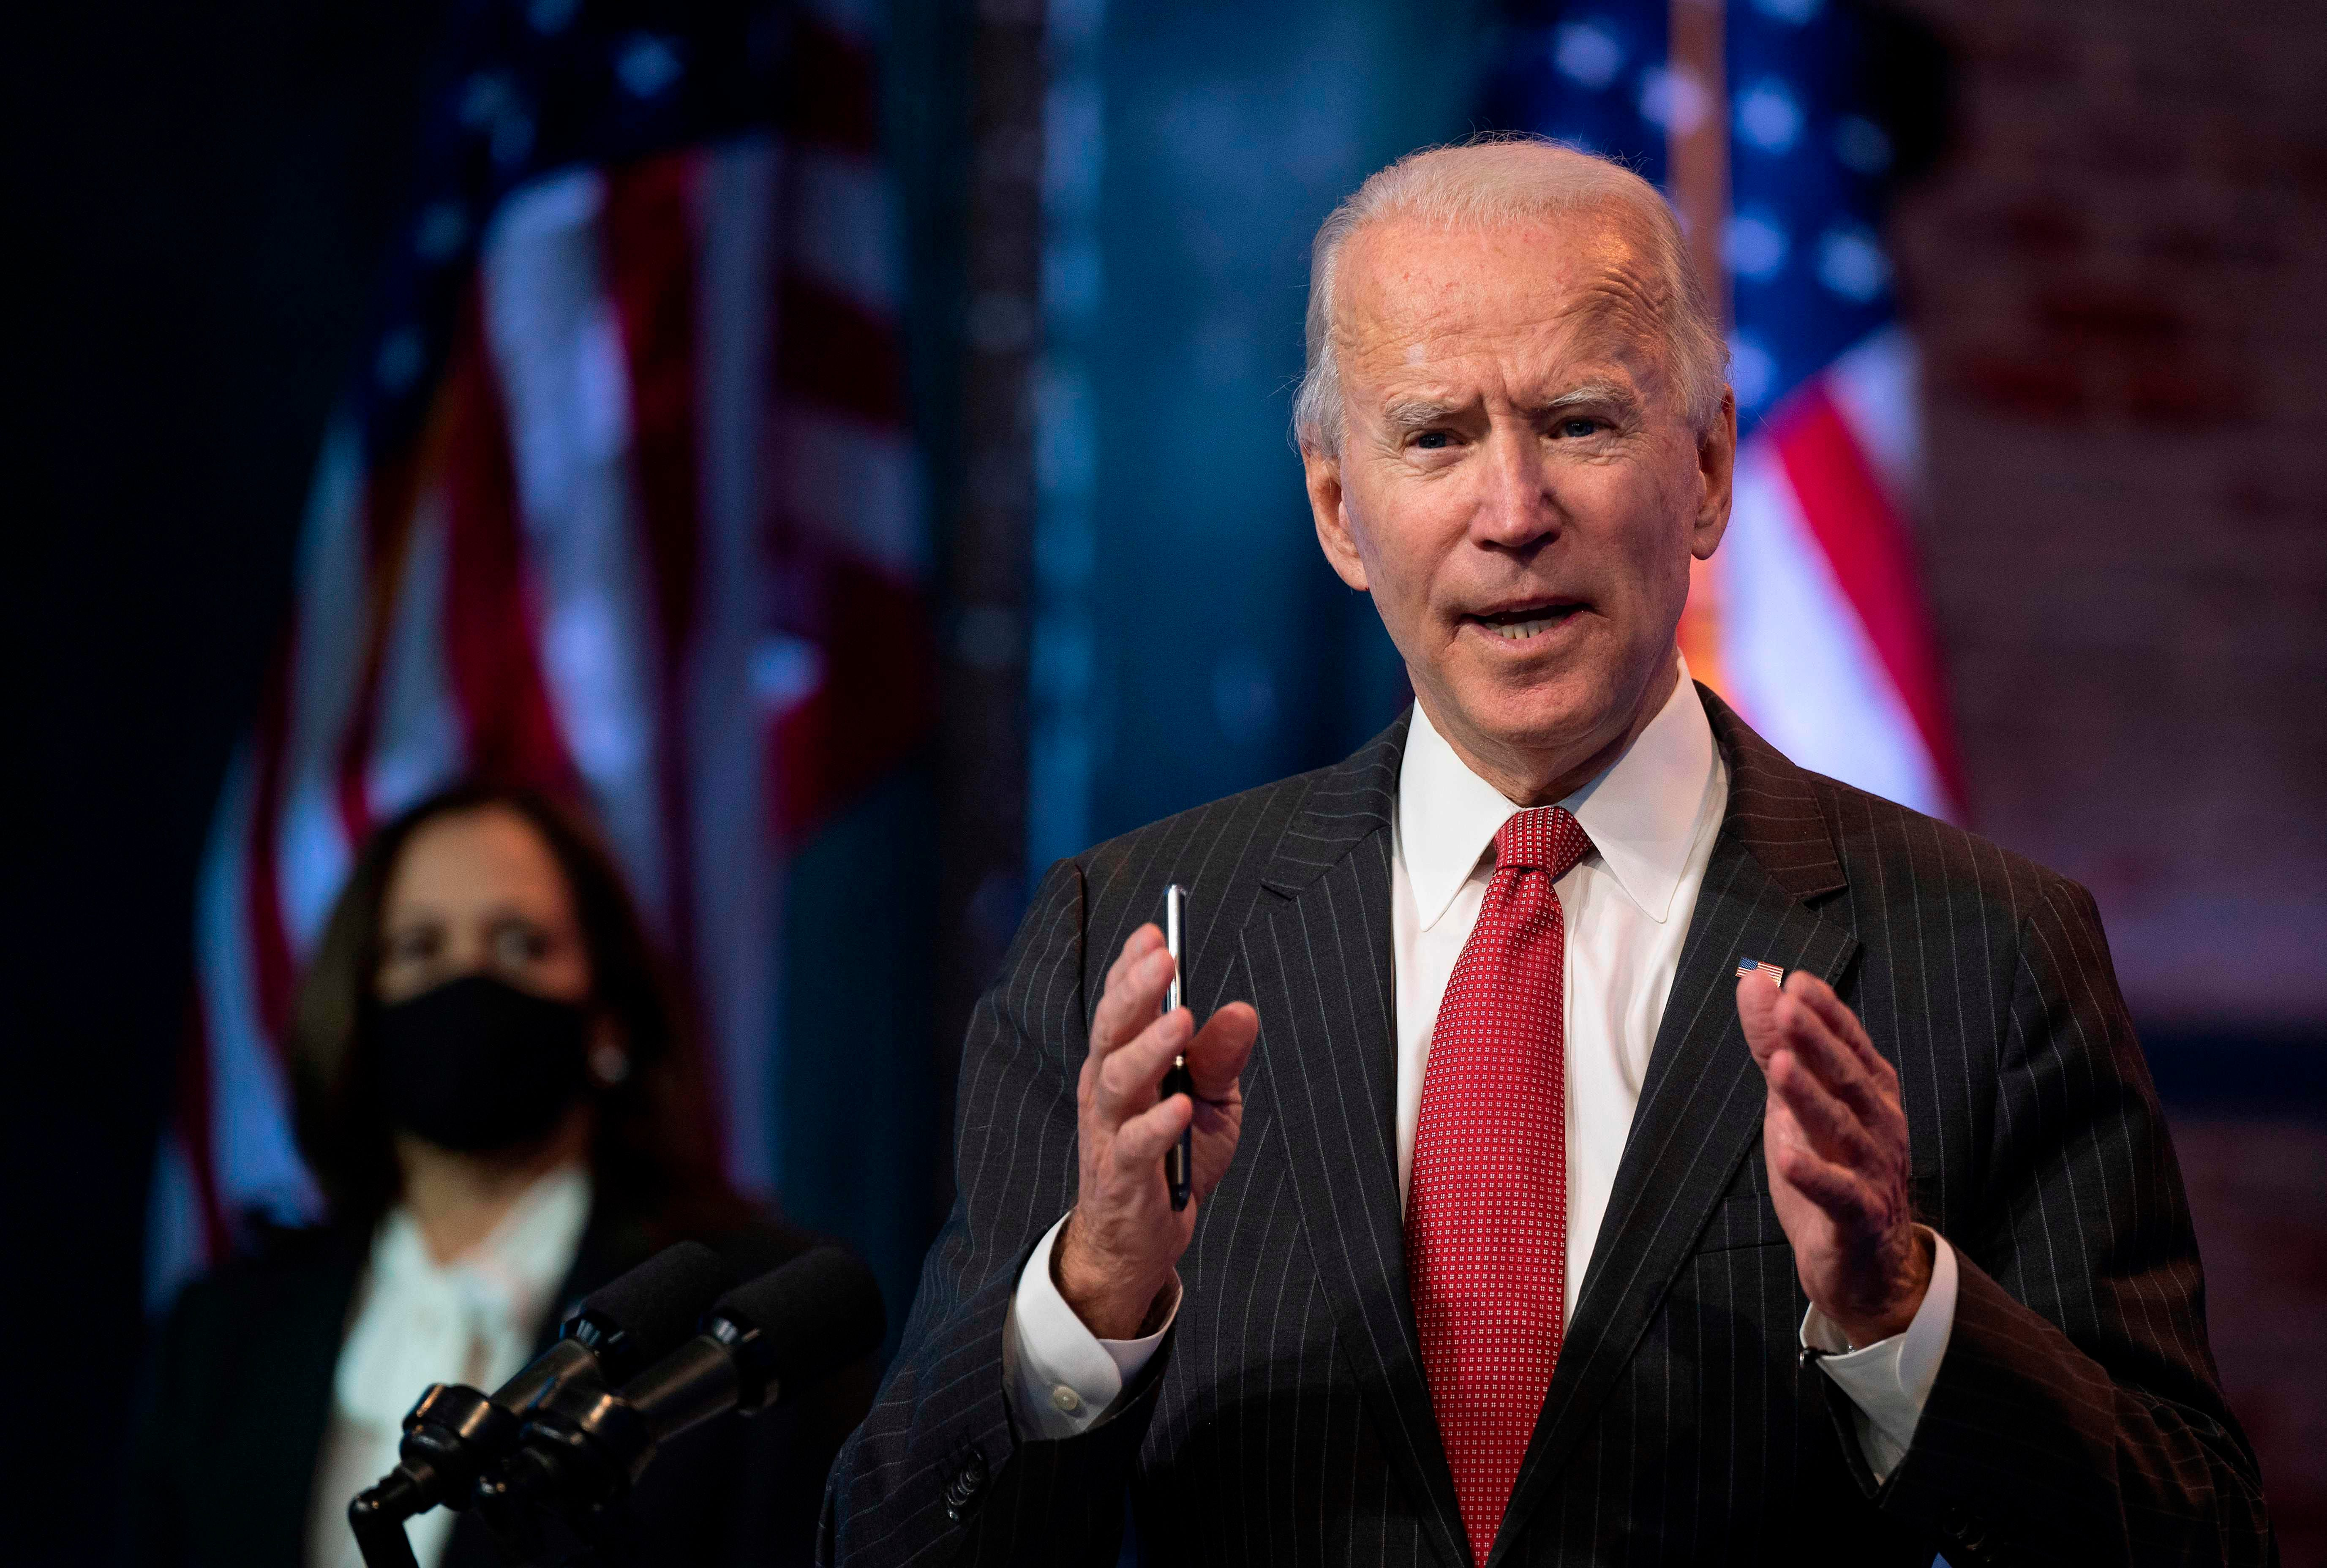 Election 2020 updates: Biden to name first Cabinet pick Tuesday; Michigan elections board faces deadlock